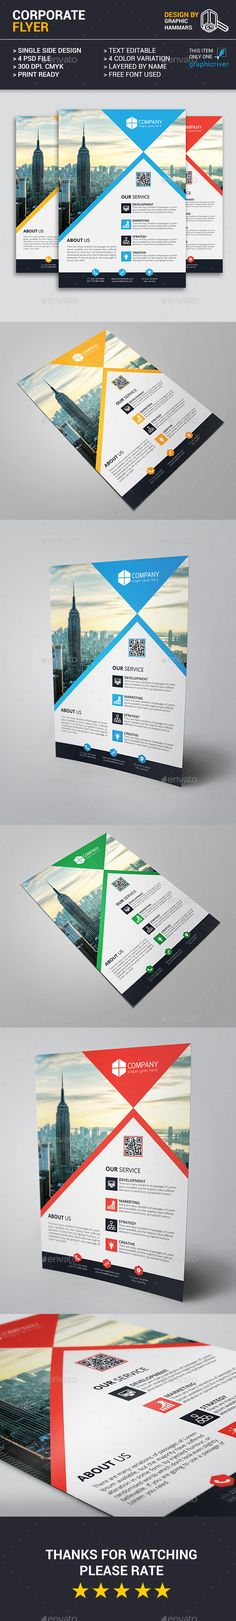 Cprporate Flyer Template PSD. Download here: https://graphicriver.net/item/corporate-flyer-template/16976142?ref=ksioks